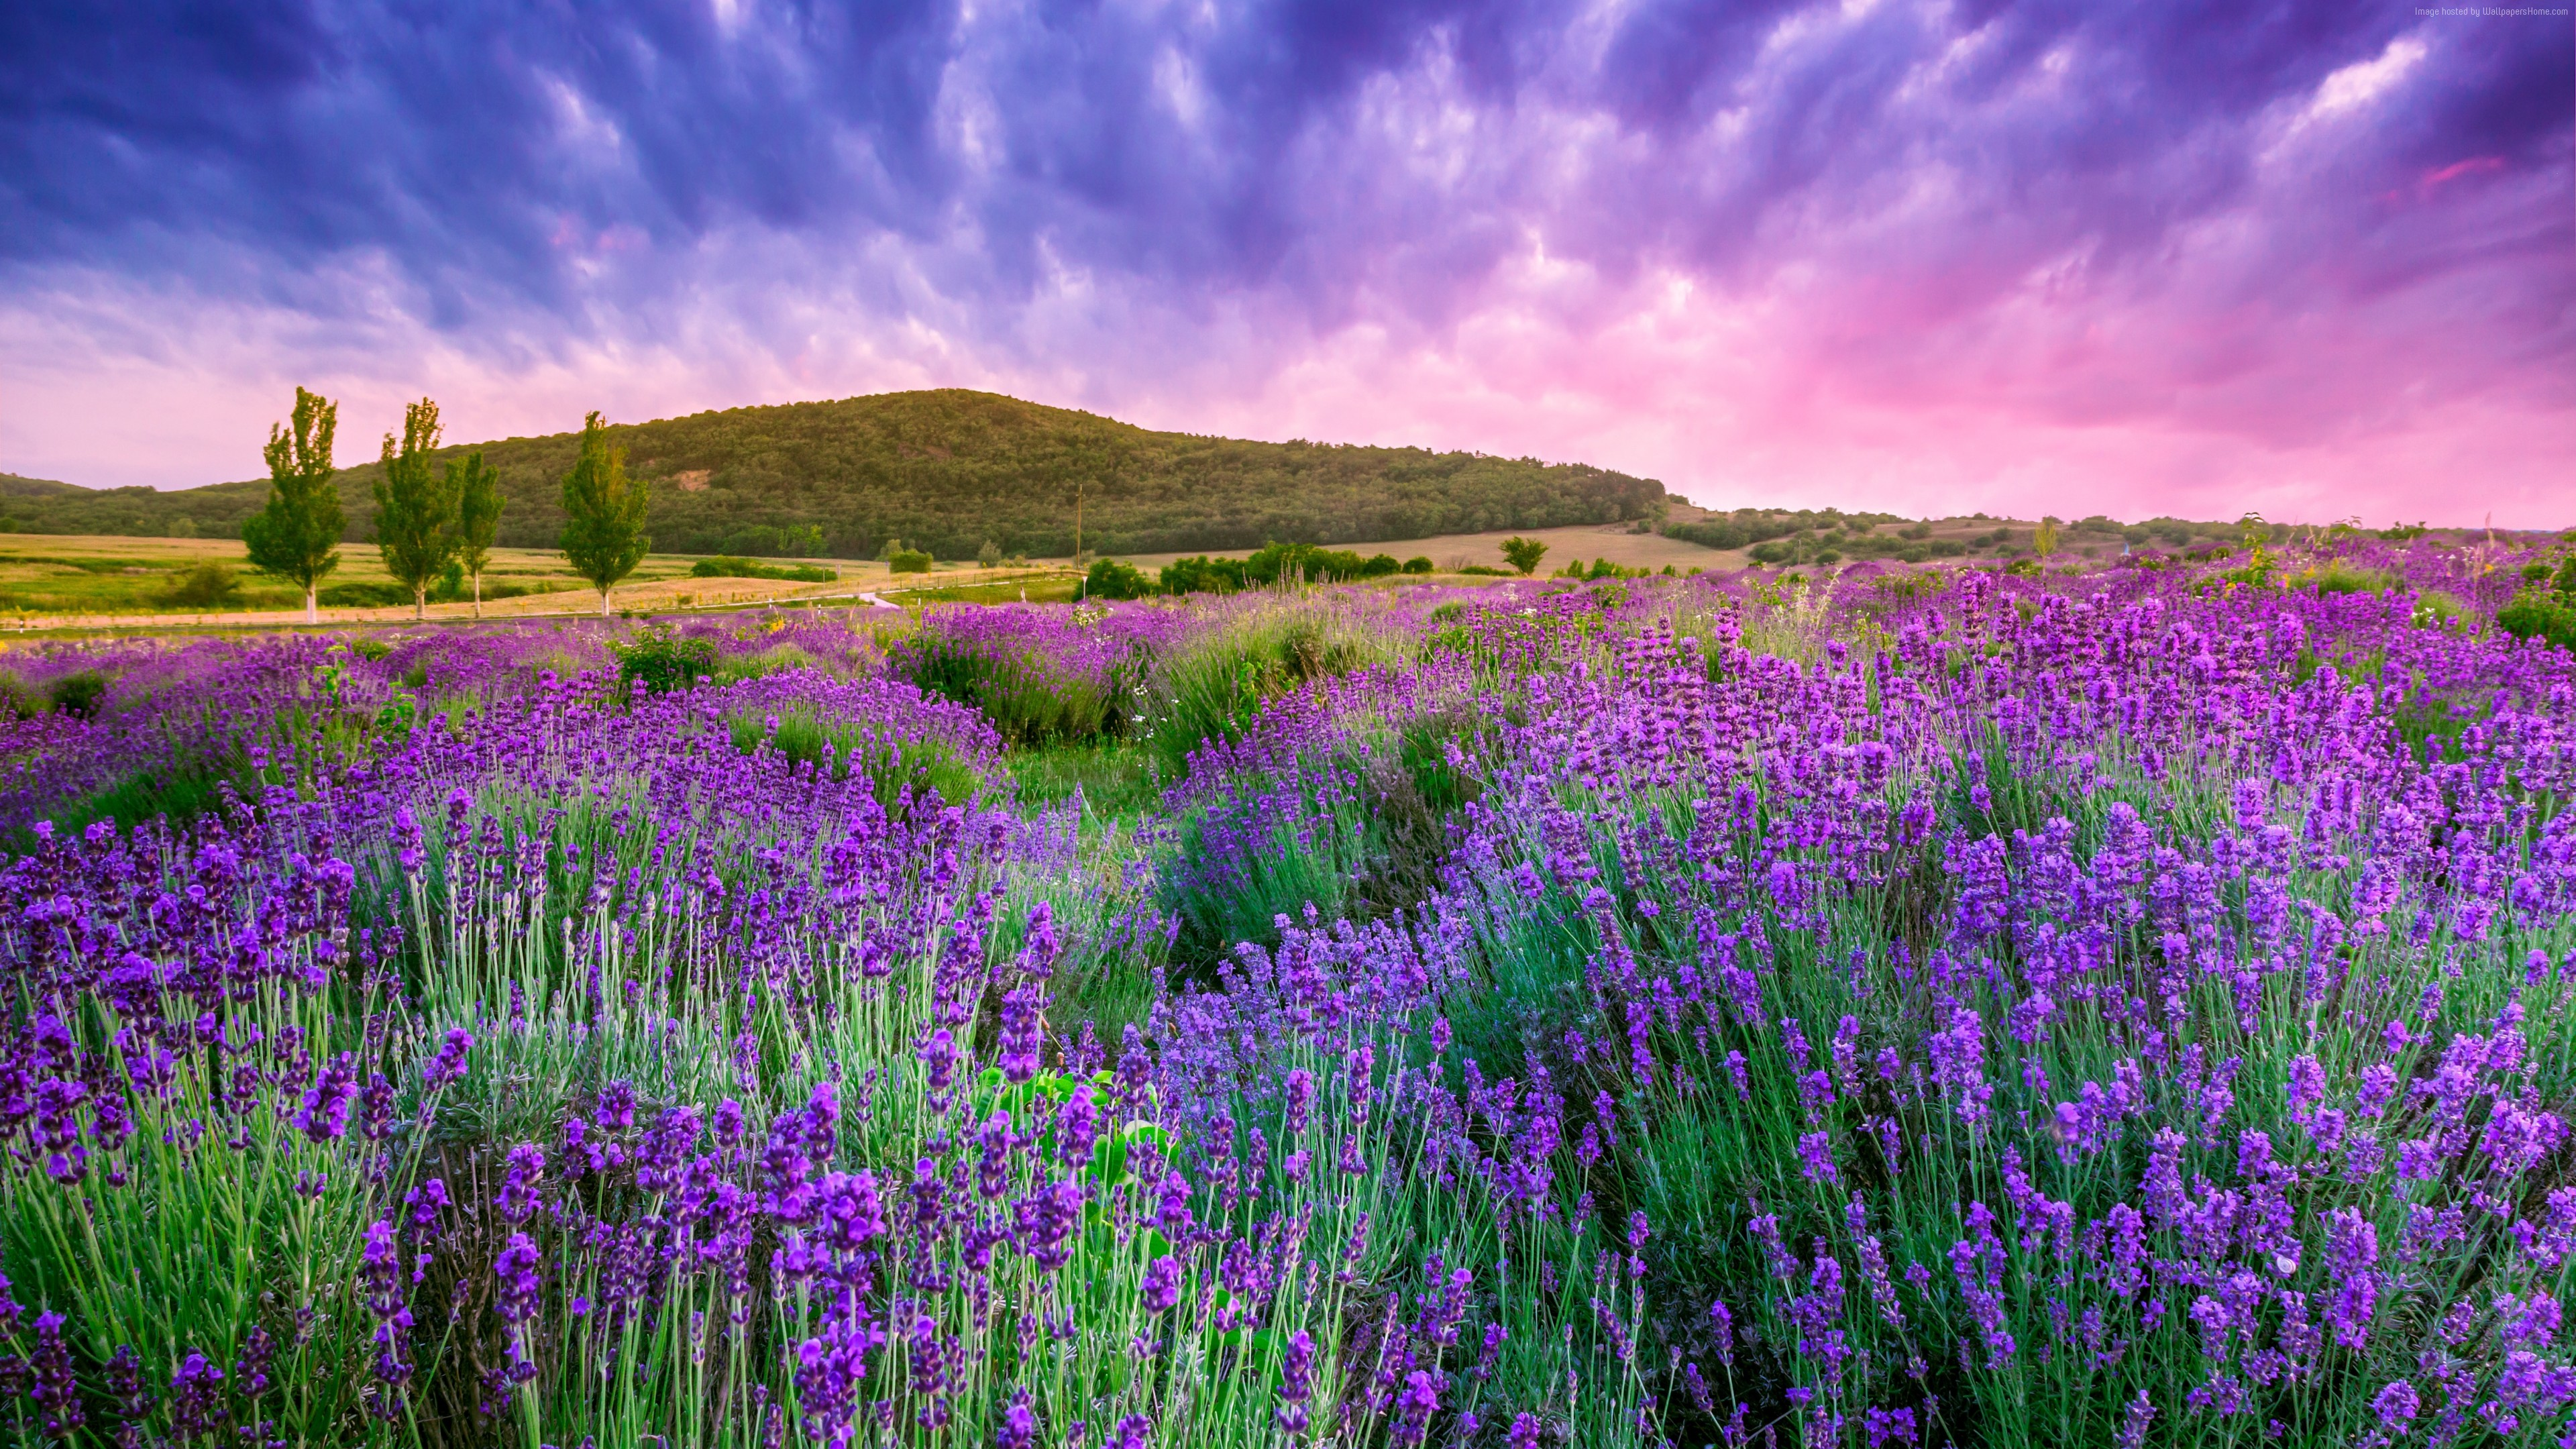 Wallpaper lavender, field, sky, mountain, Provence, France, Europe, 4k, Travel